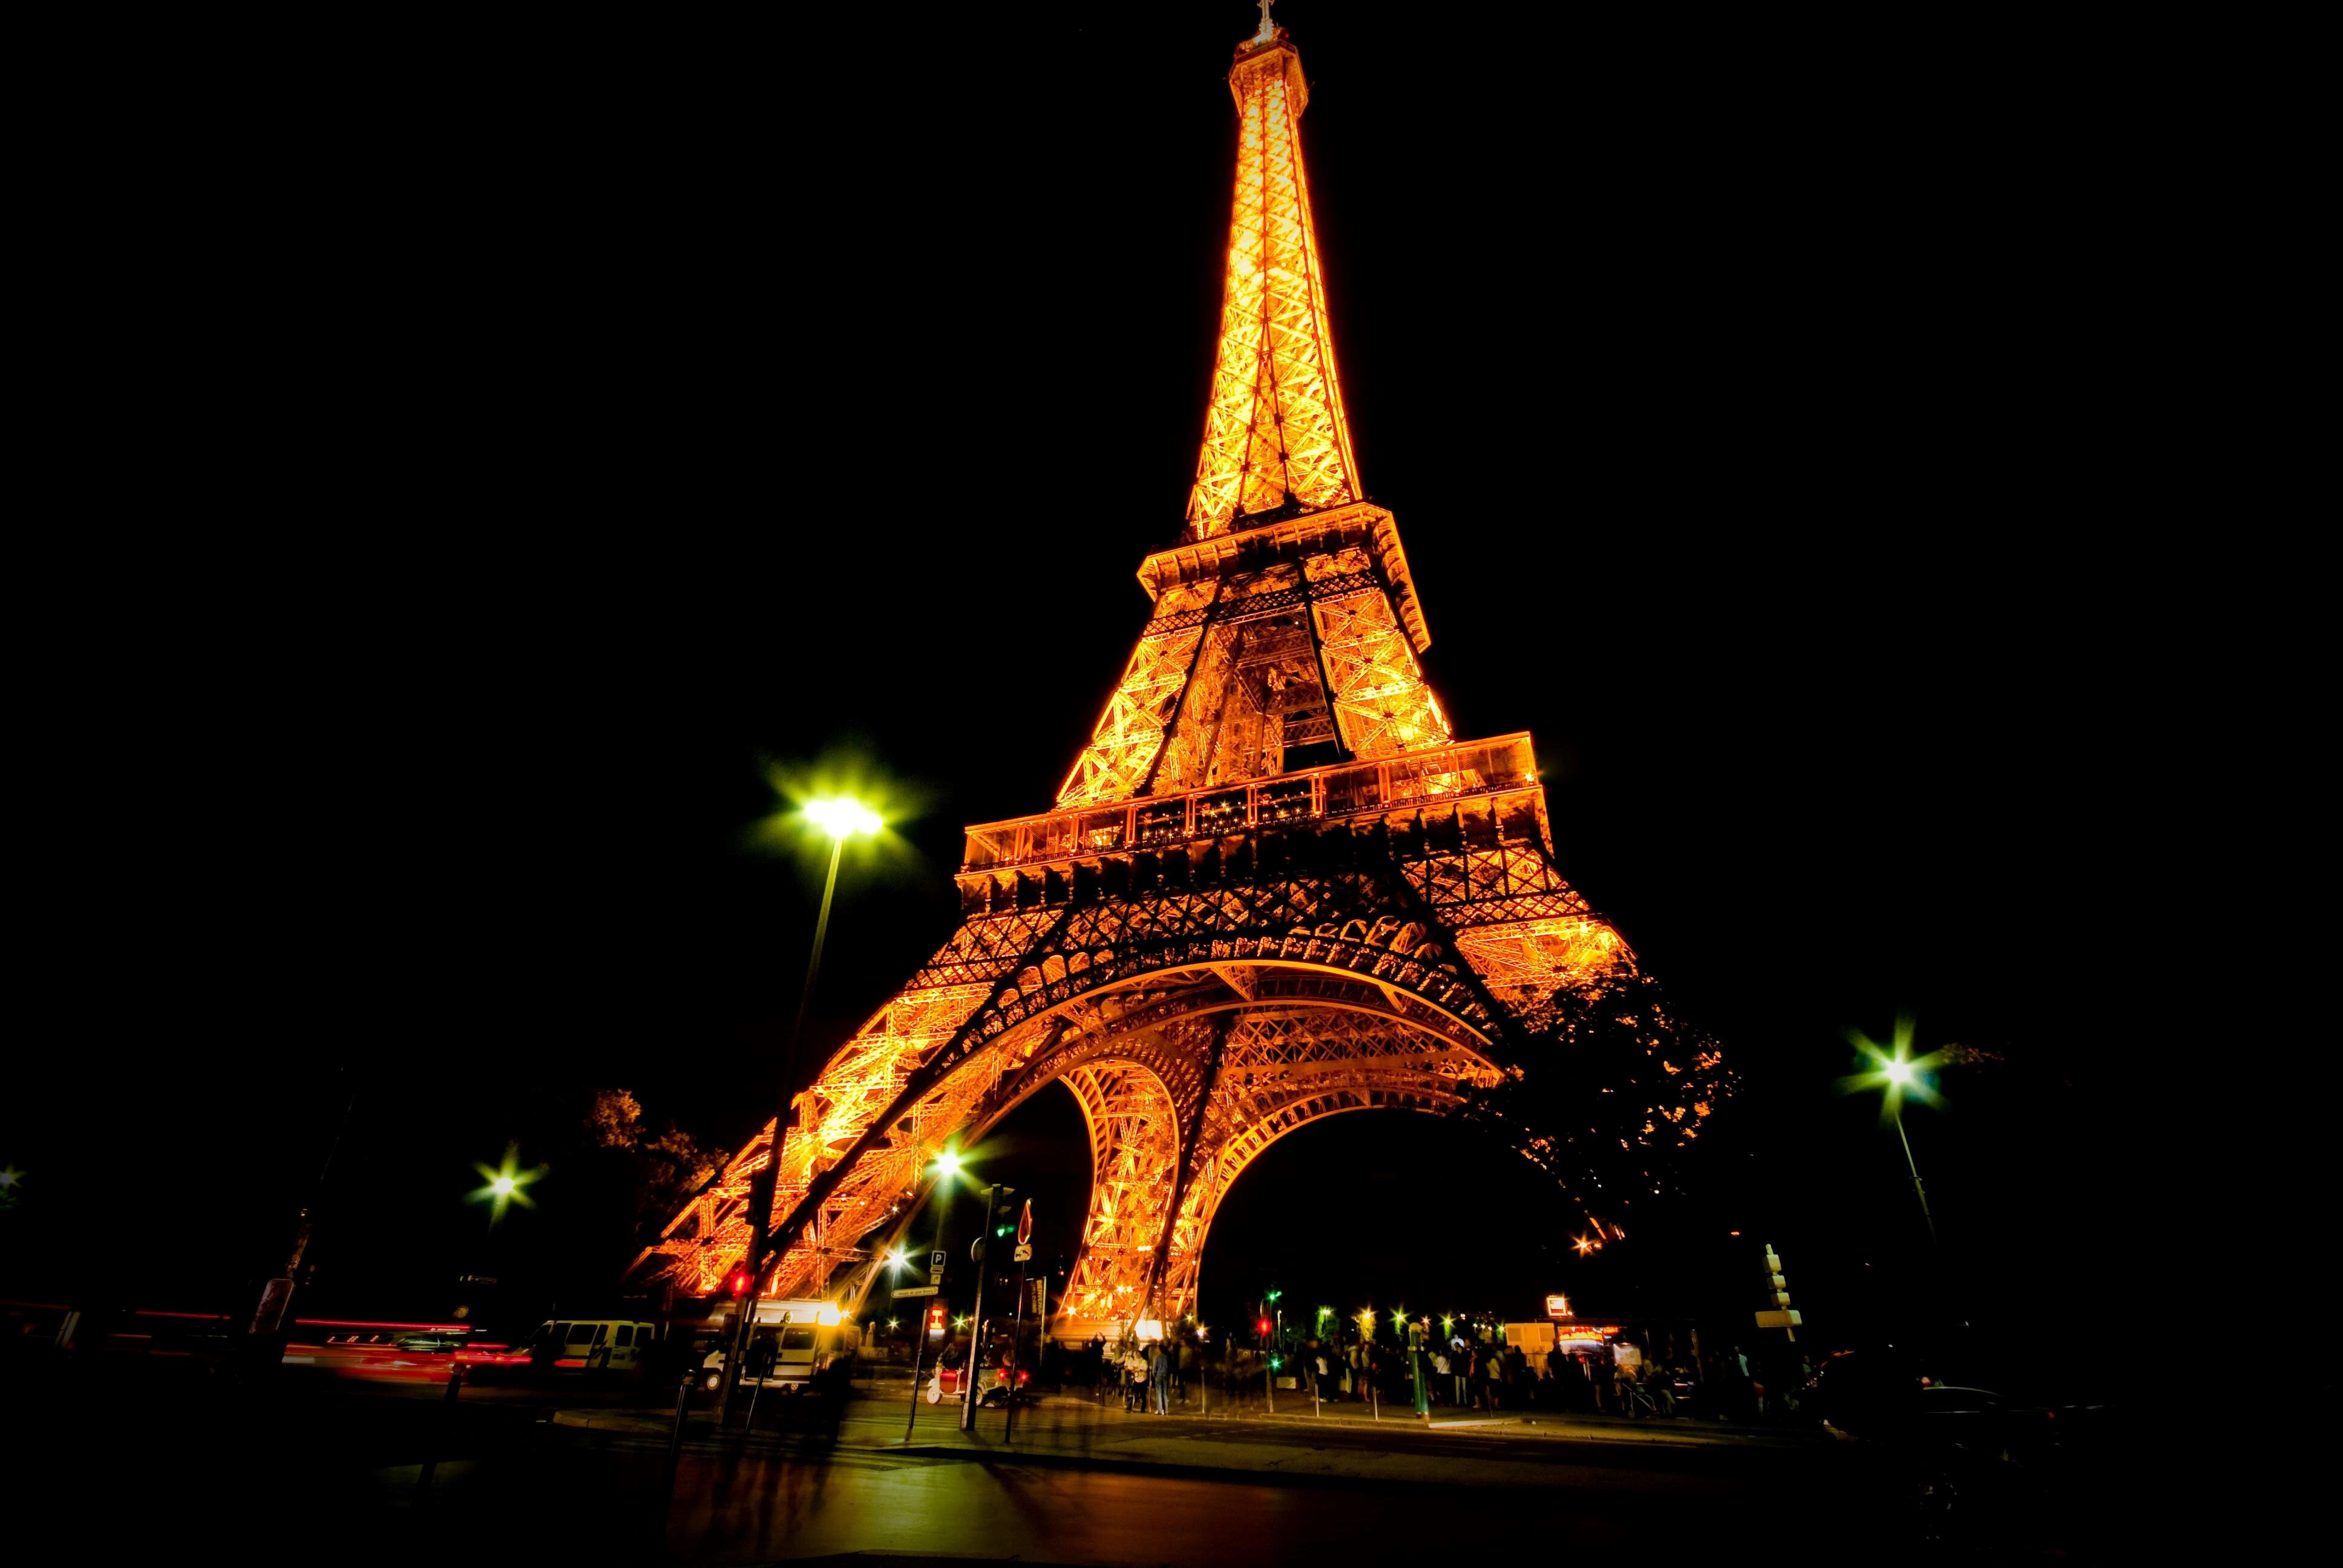 Eiffel Tower Night View Hd Wallpapers